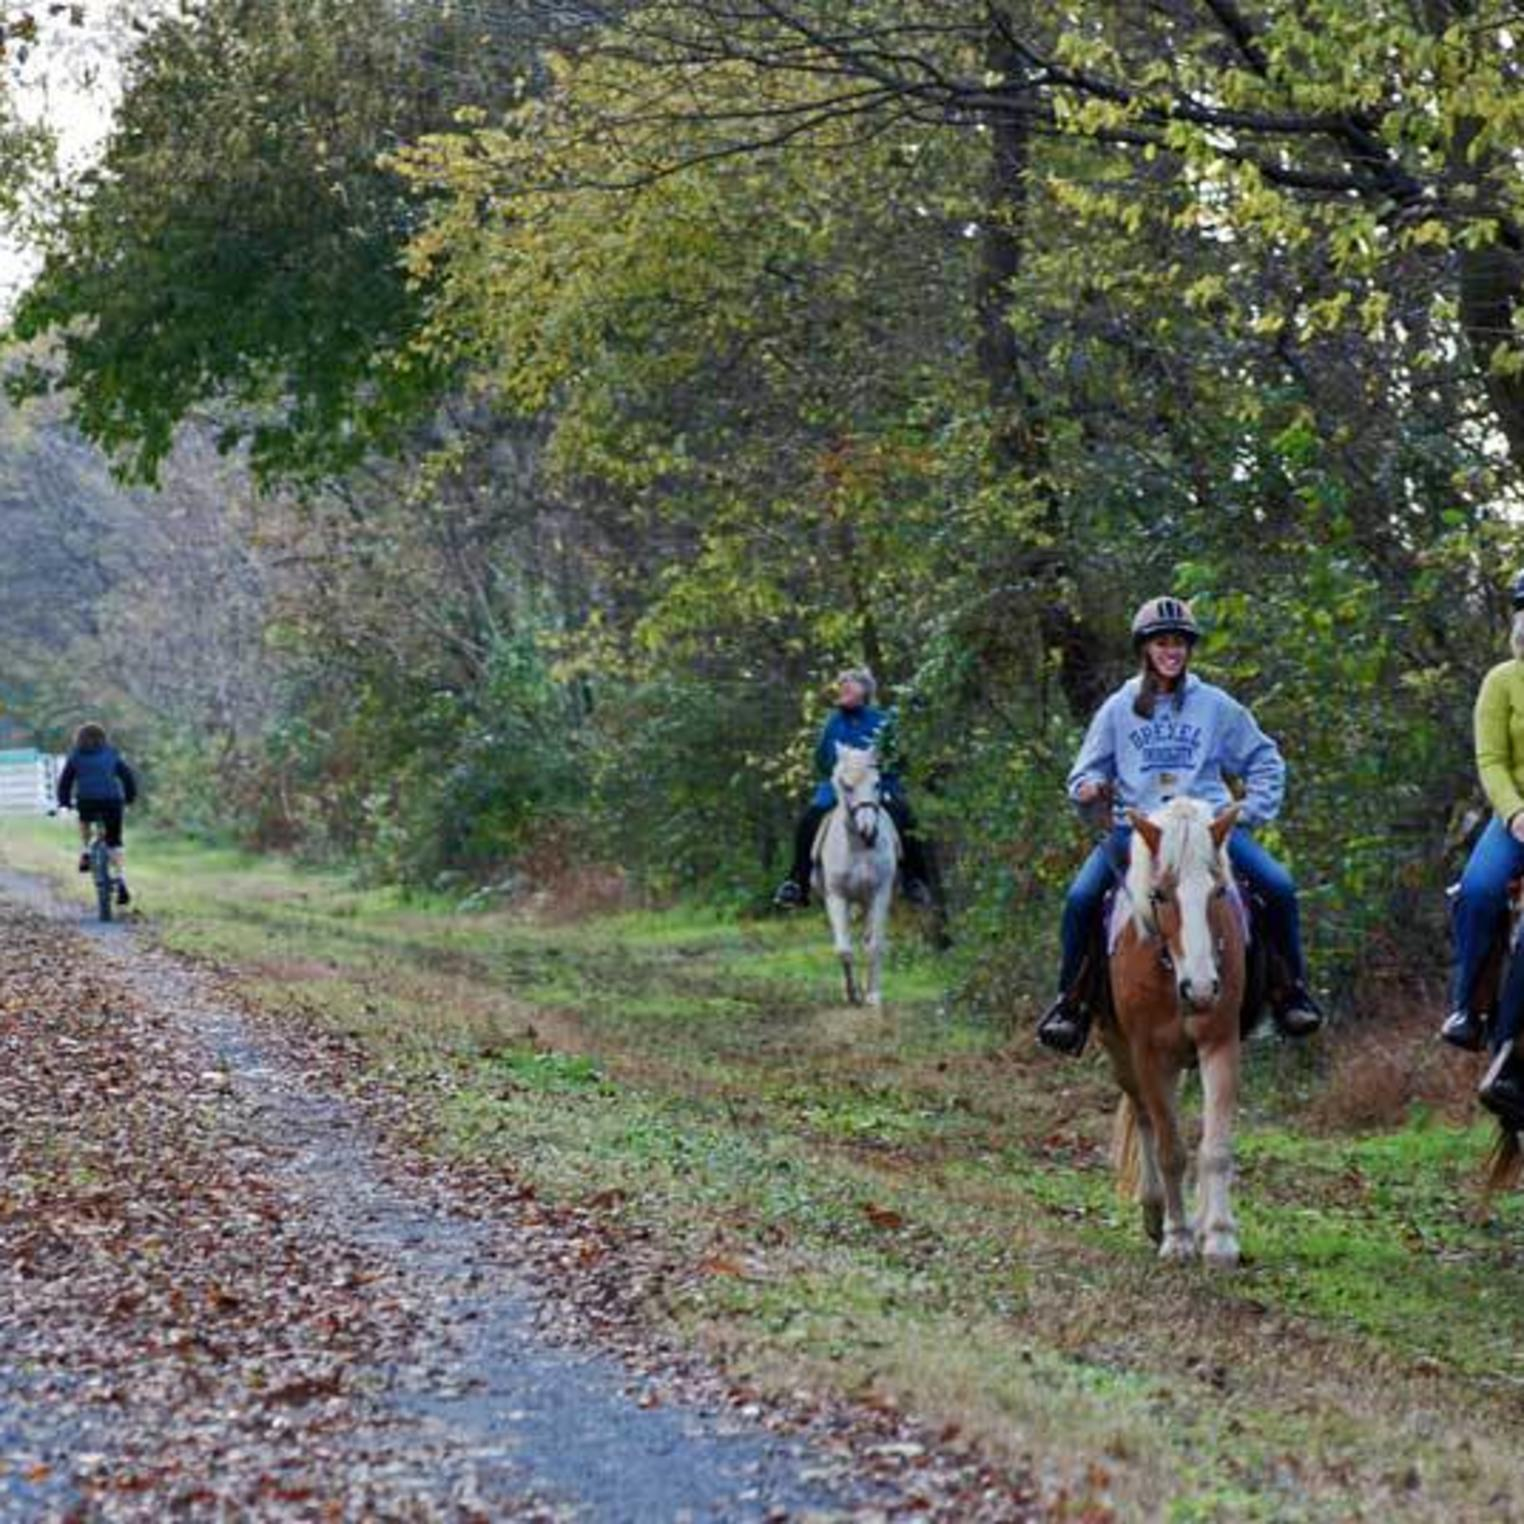 Biking, Walking and Horseback Riding on the Cumberland Valley Rail Trail